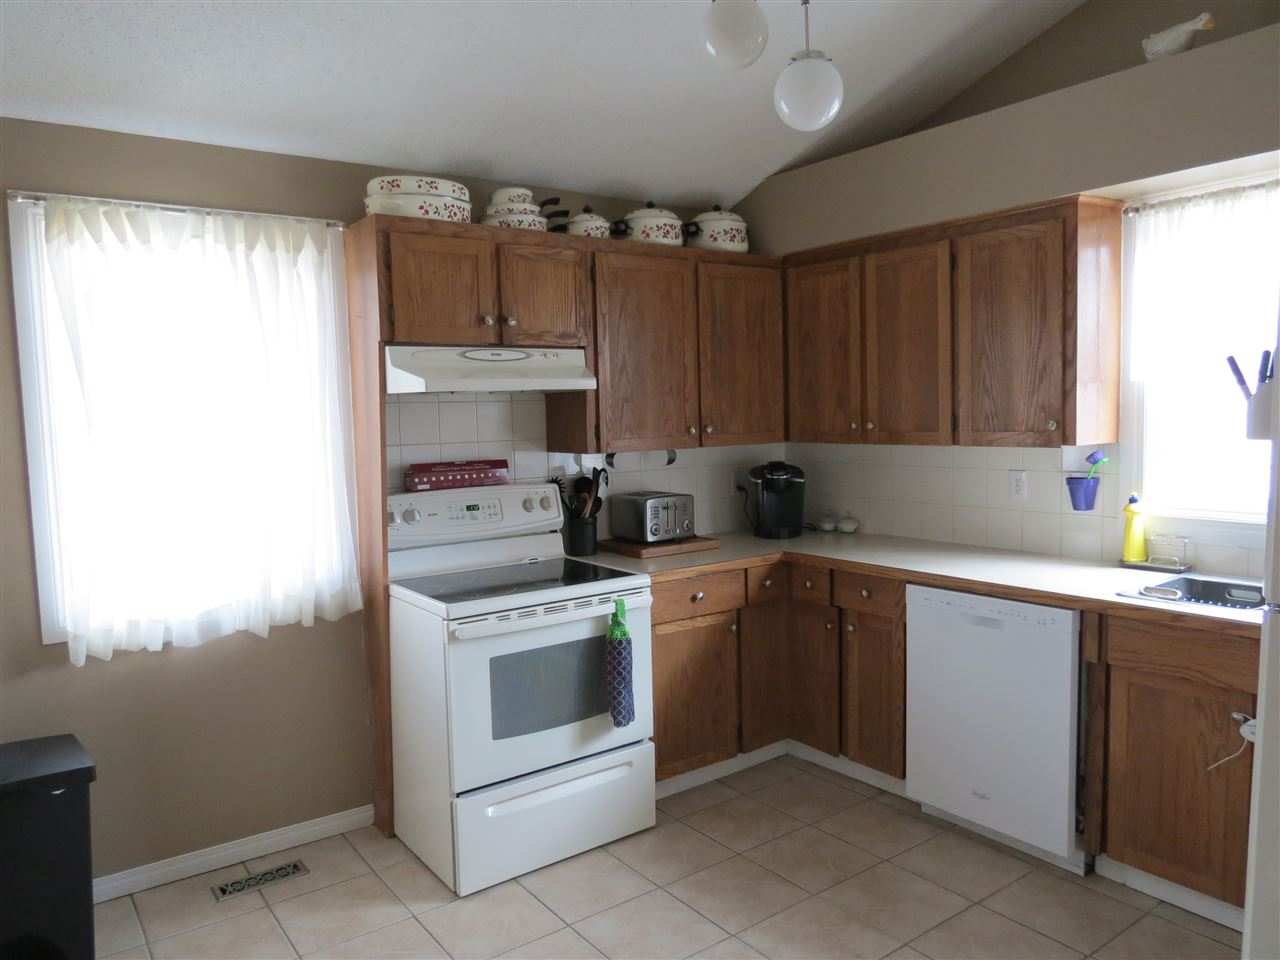 Photo 3: 9907 90 Street: Morinville House for sale : MLS(r) # E4057678